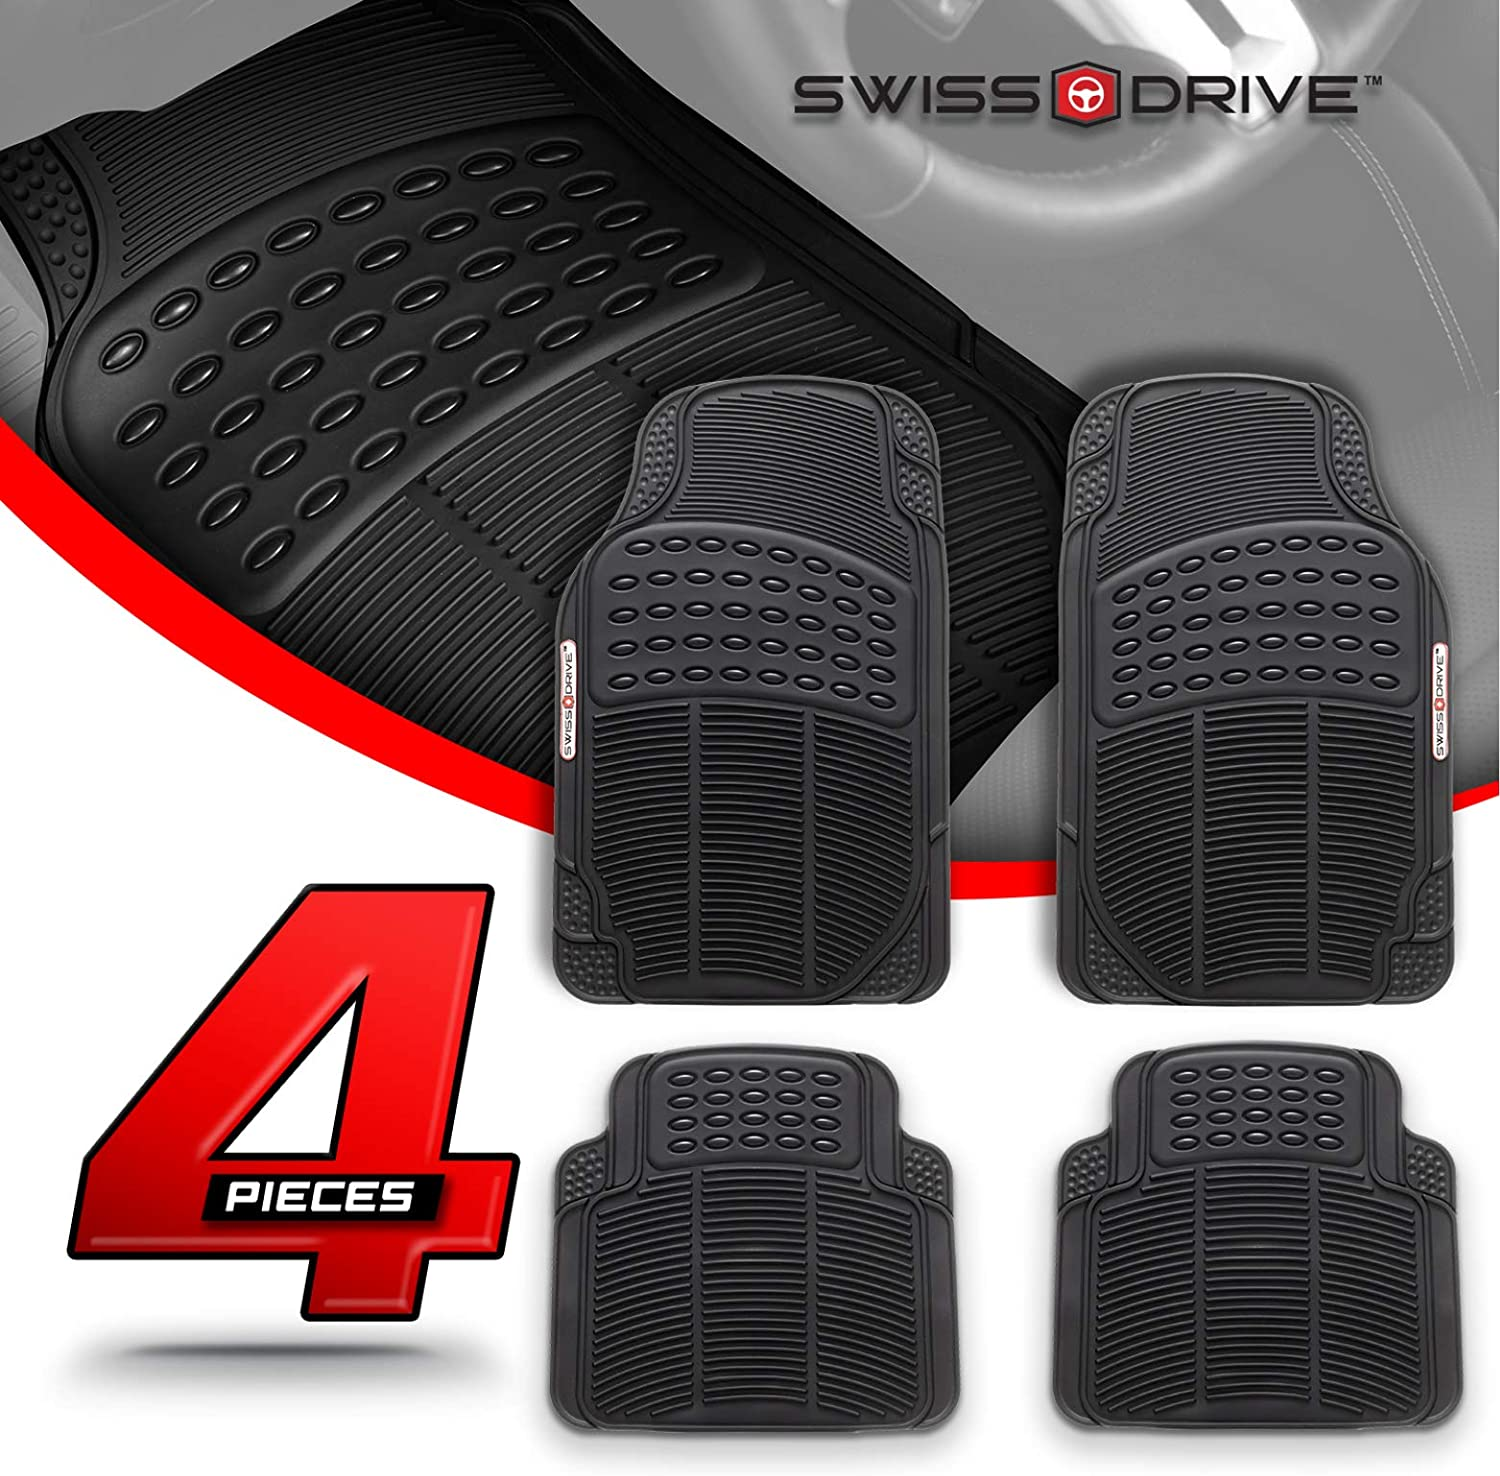 Swiss Drive Rubber Car Mats 3pcs Conti Car Floor Mats Rubber Front and Rear PVC Rubber Floor Mats for Cars SUV Van Truck All-Weather Protection Mats Grey Heavy-Duty Mats with Trimmable Design